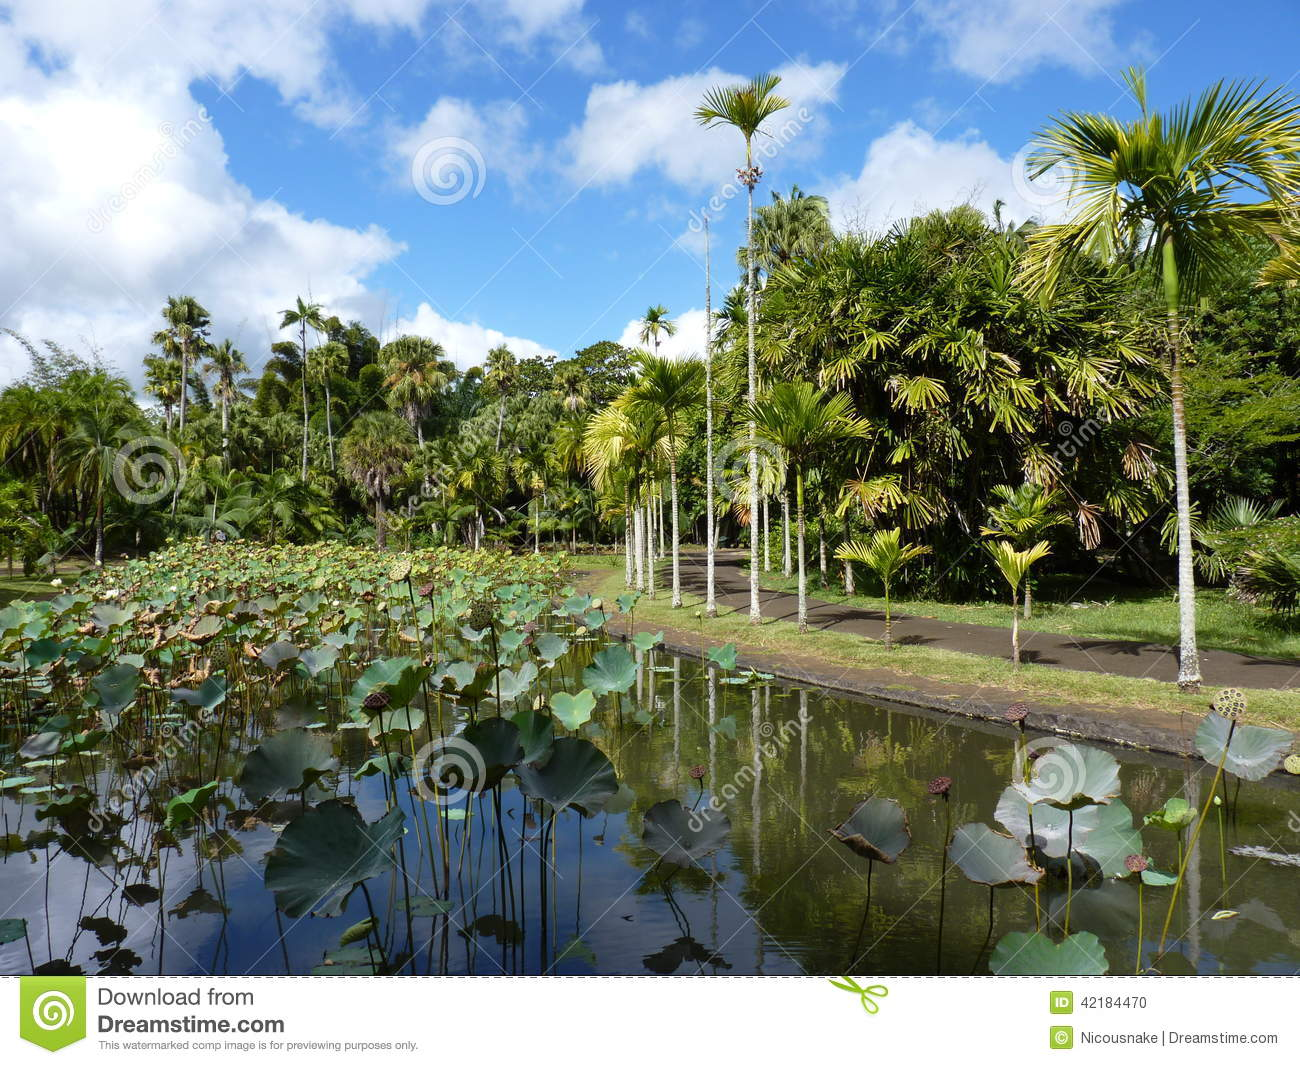 Sir seewoosagur ramgoolam botanical garden stock photo for Gardening tools mauritius